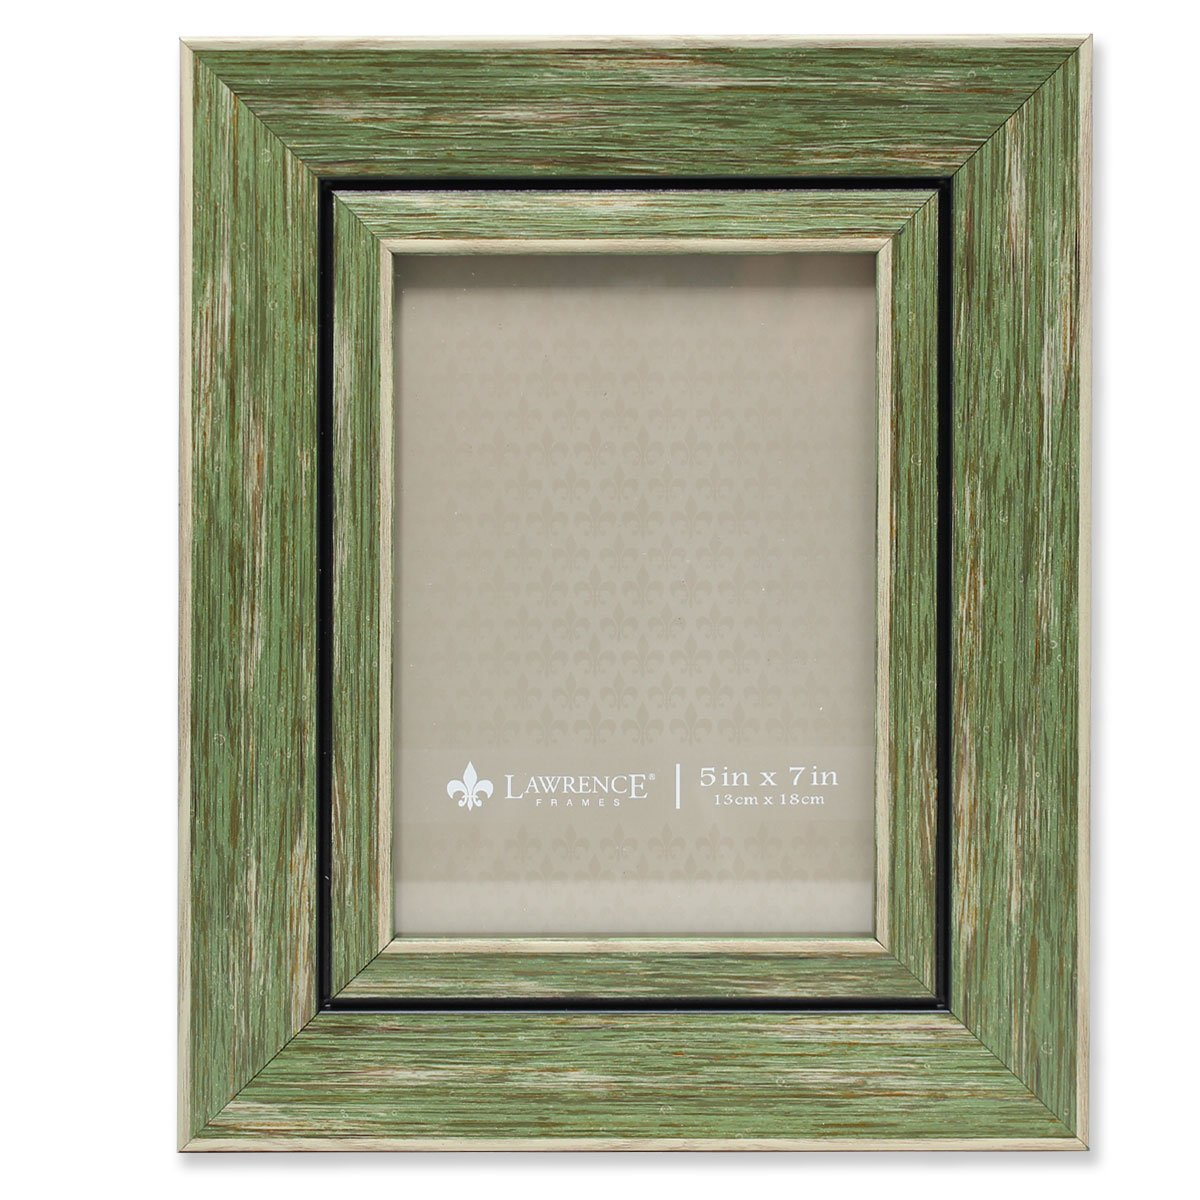 Lawrence Frames Weathered Decorative Picture Frame, 5 by 7-Inch, Green by Lawrence Frames